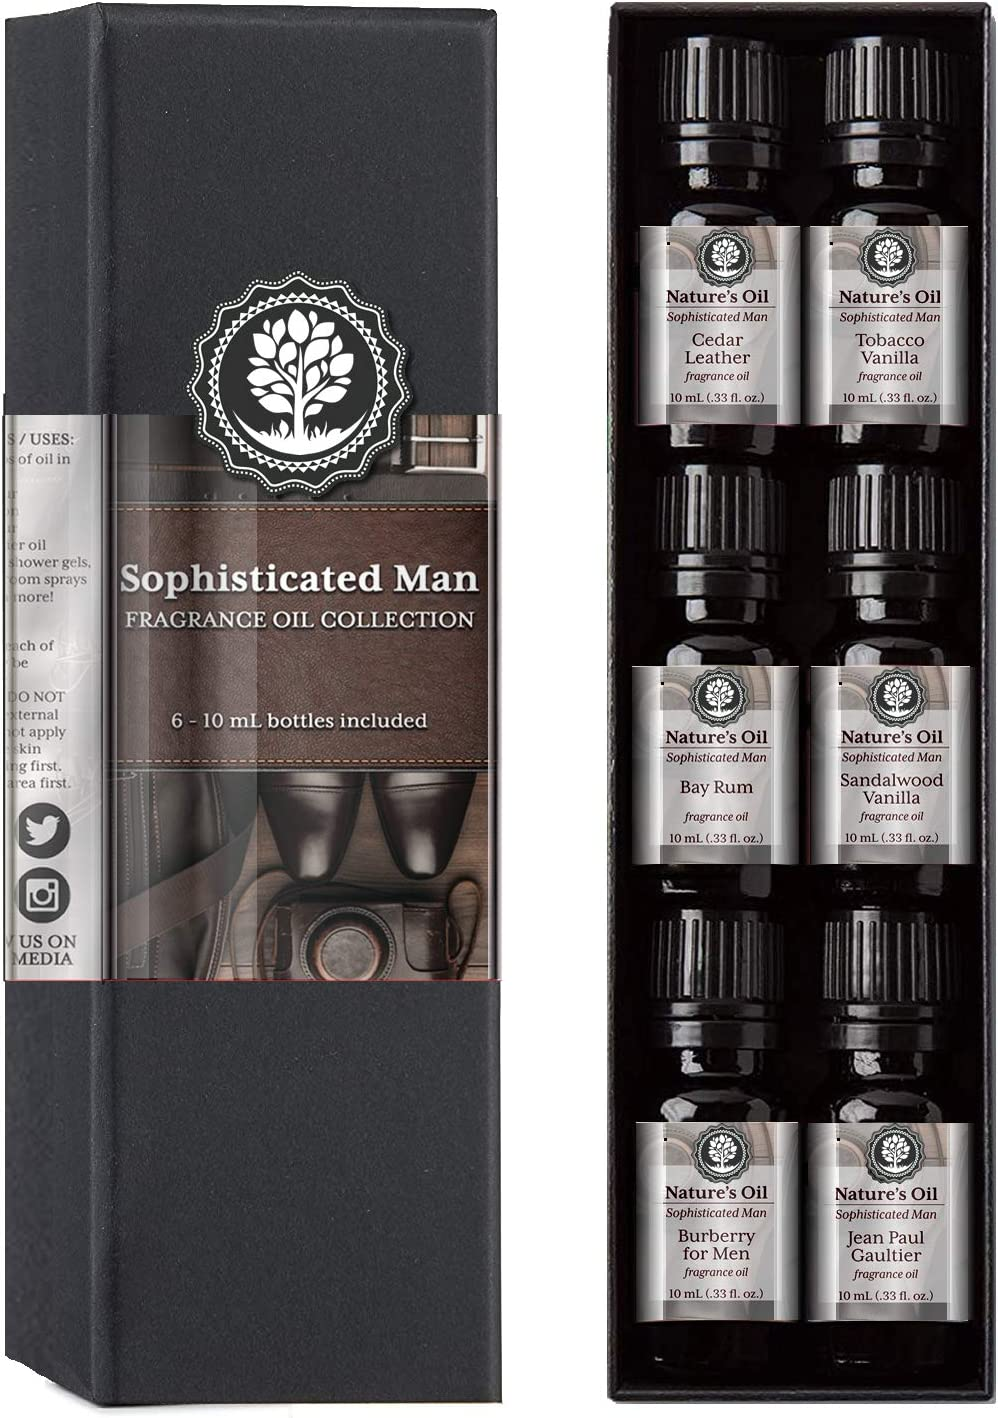 Sophisticated Man Fragrance Oil Set Top 6 Mens 10ml for Cologne, Beard Oil, Diffuser Oils, Making Soap, Candles, Lotion, Home Scents, Linen Spray and Lotion